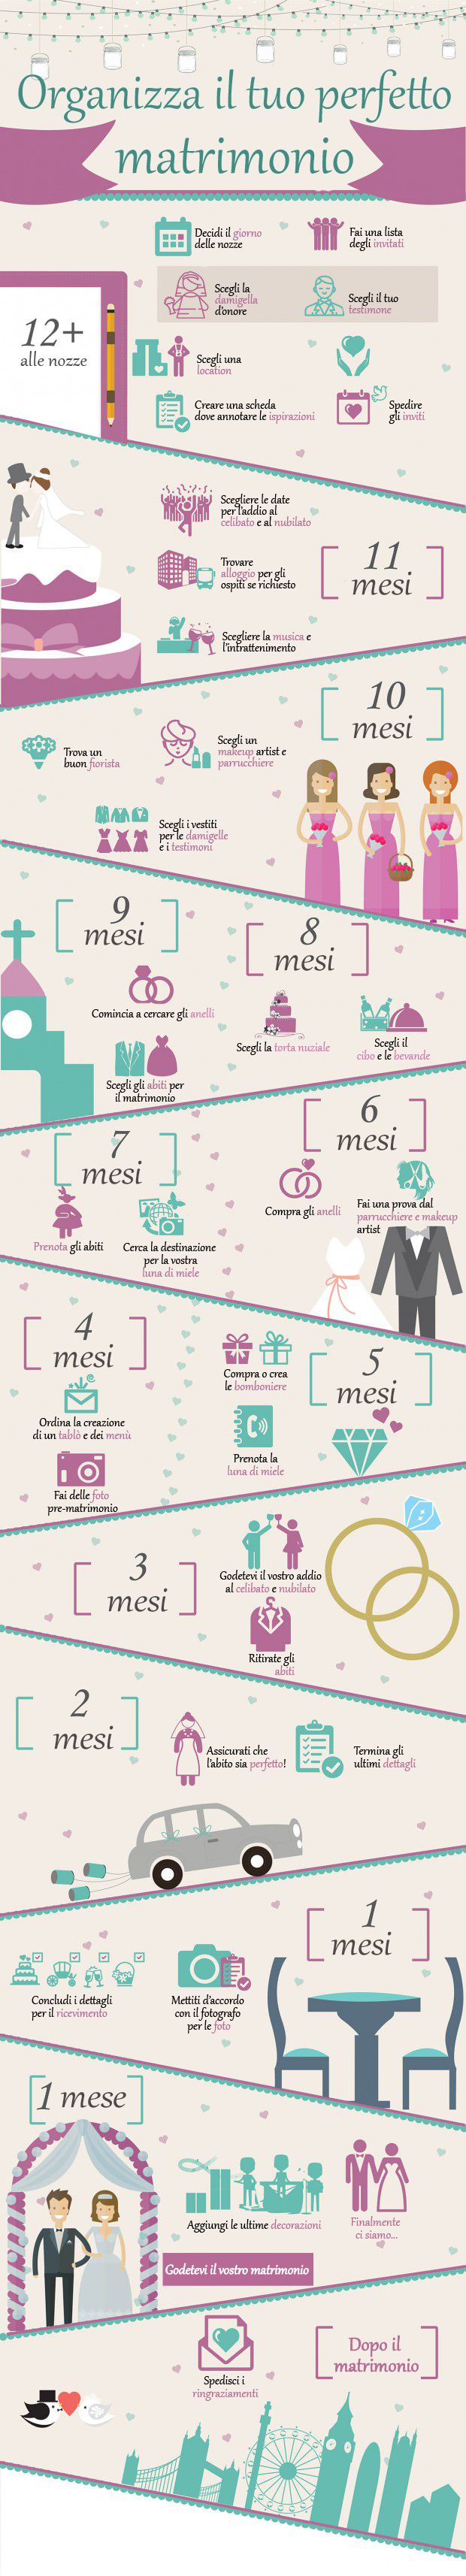 to-do-list-matrimonio.png (620×3428)